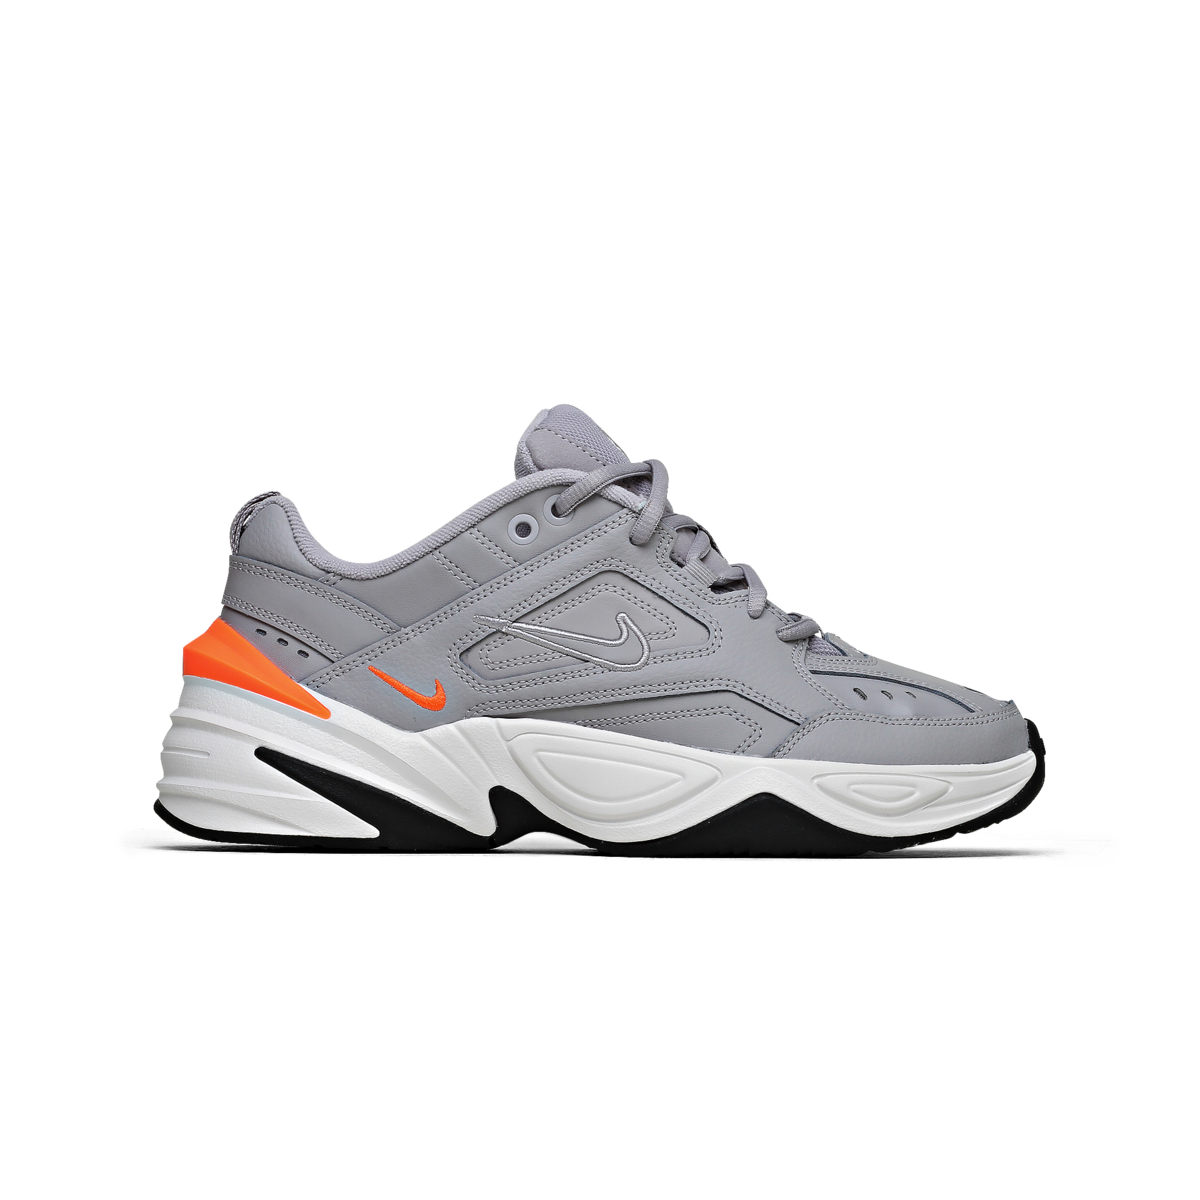 fresh styles authentic newest Wmns M2K Tekno